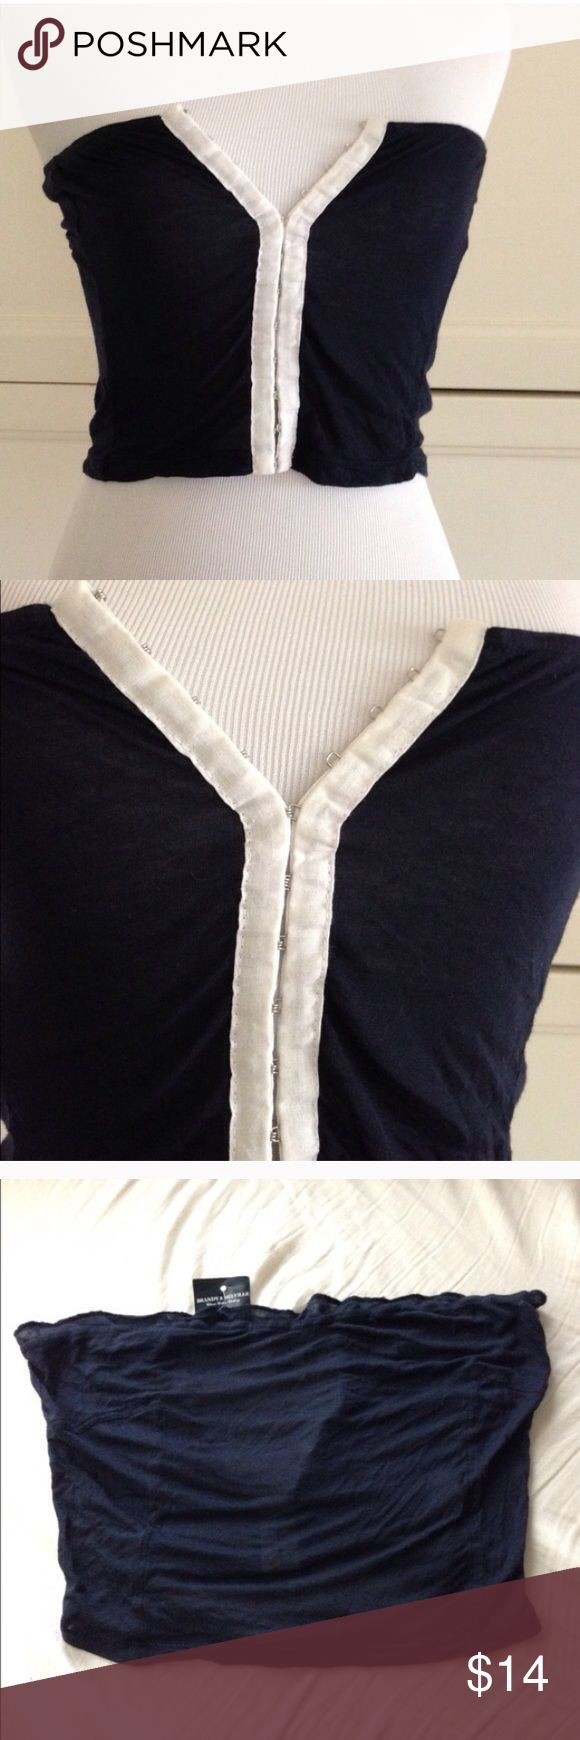 Brandy Melville blue and white bandeau top-NWT! Brandy Melville blue and white bandeau top-NWT! Brandy Melville Tops